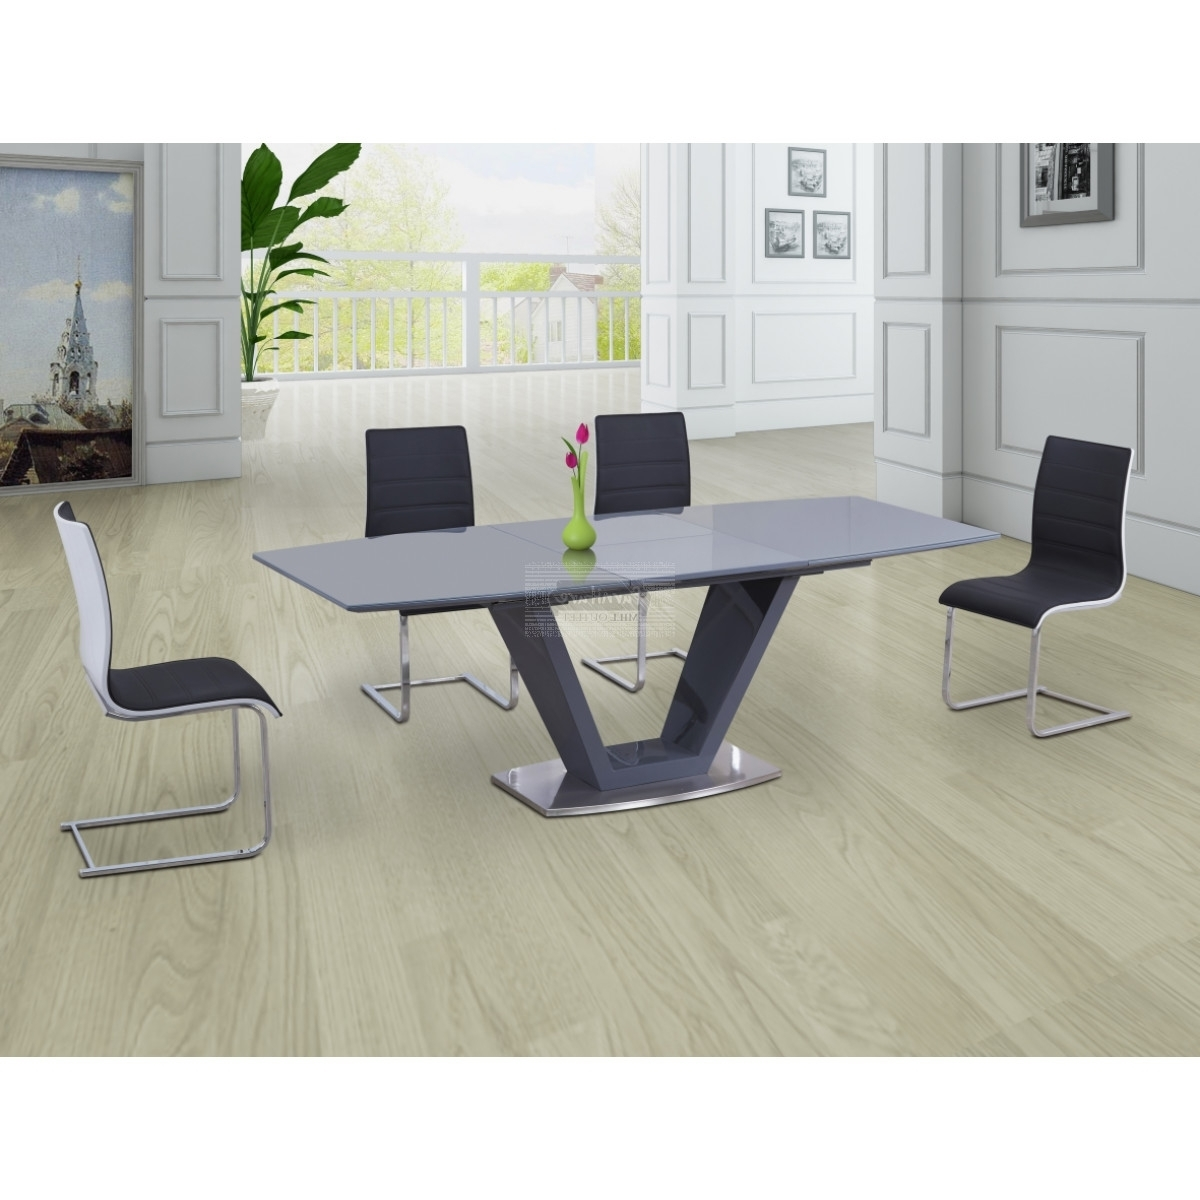 Most Recently Released Lorgato Grey High Gloss Extending Dining Table – 160Cm To 220Cm Intended For Black Gloss Extending Dining Tables (View 19 of 25)